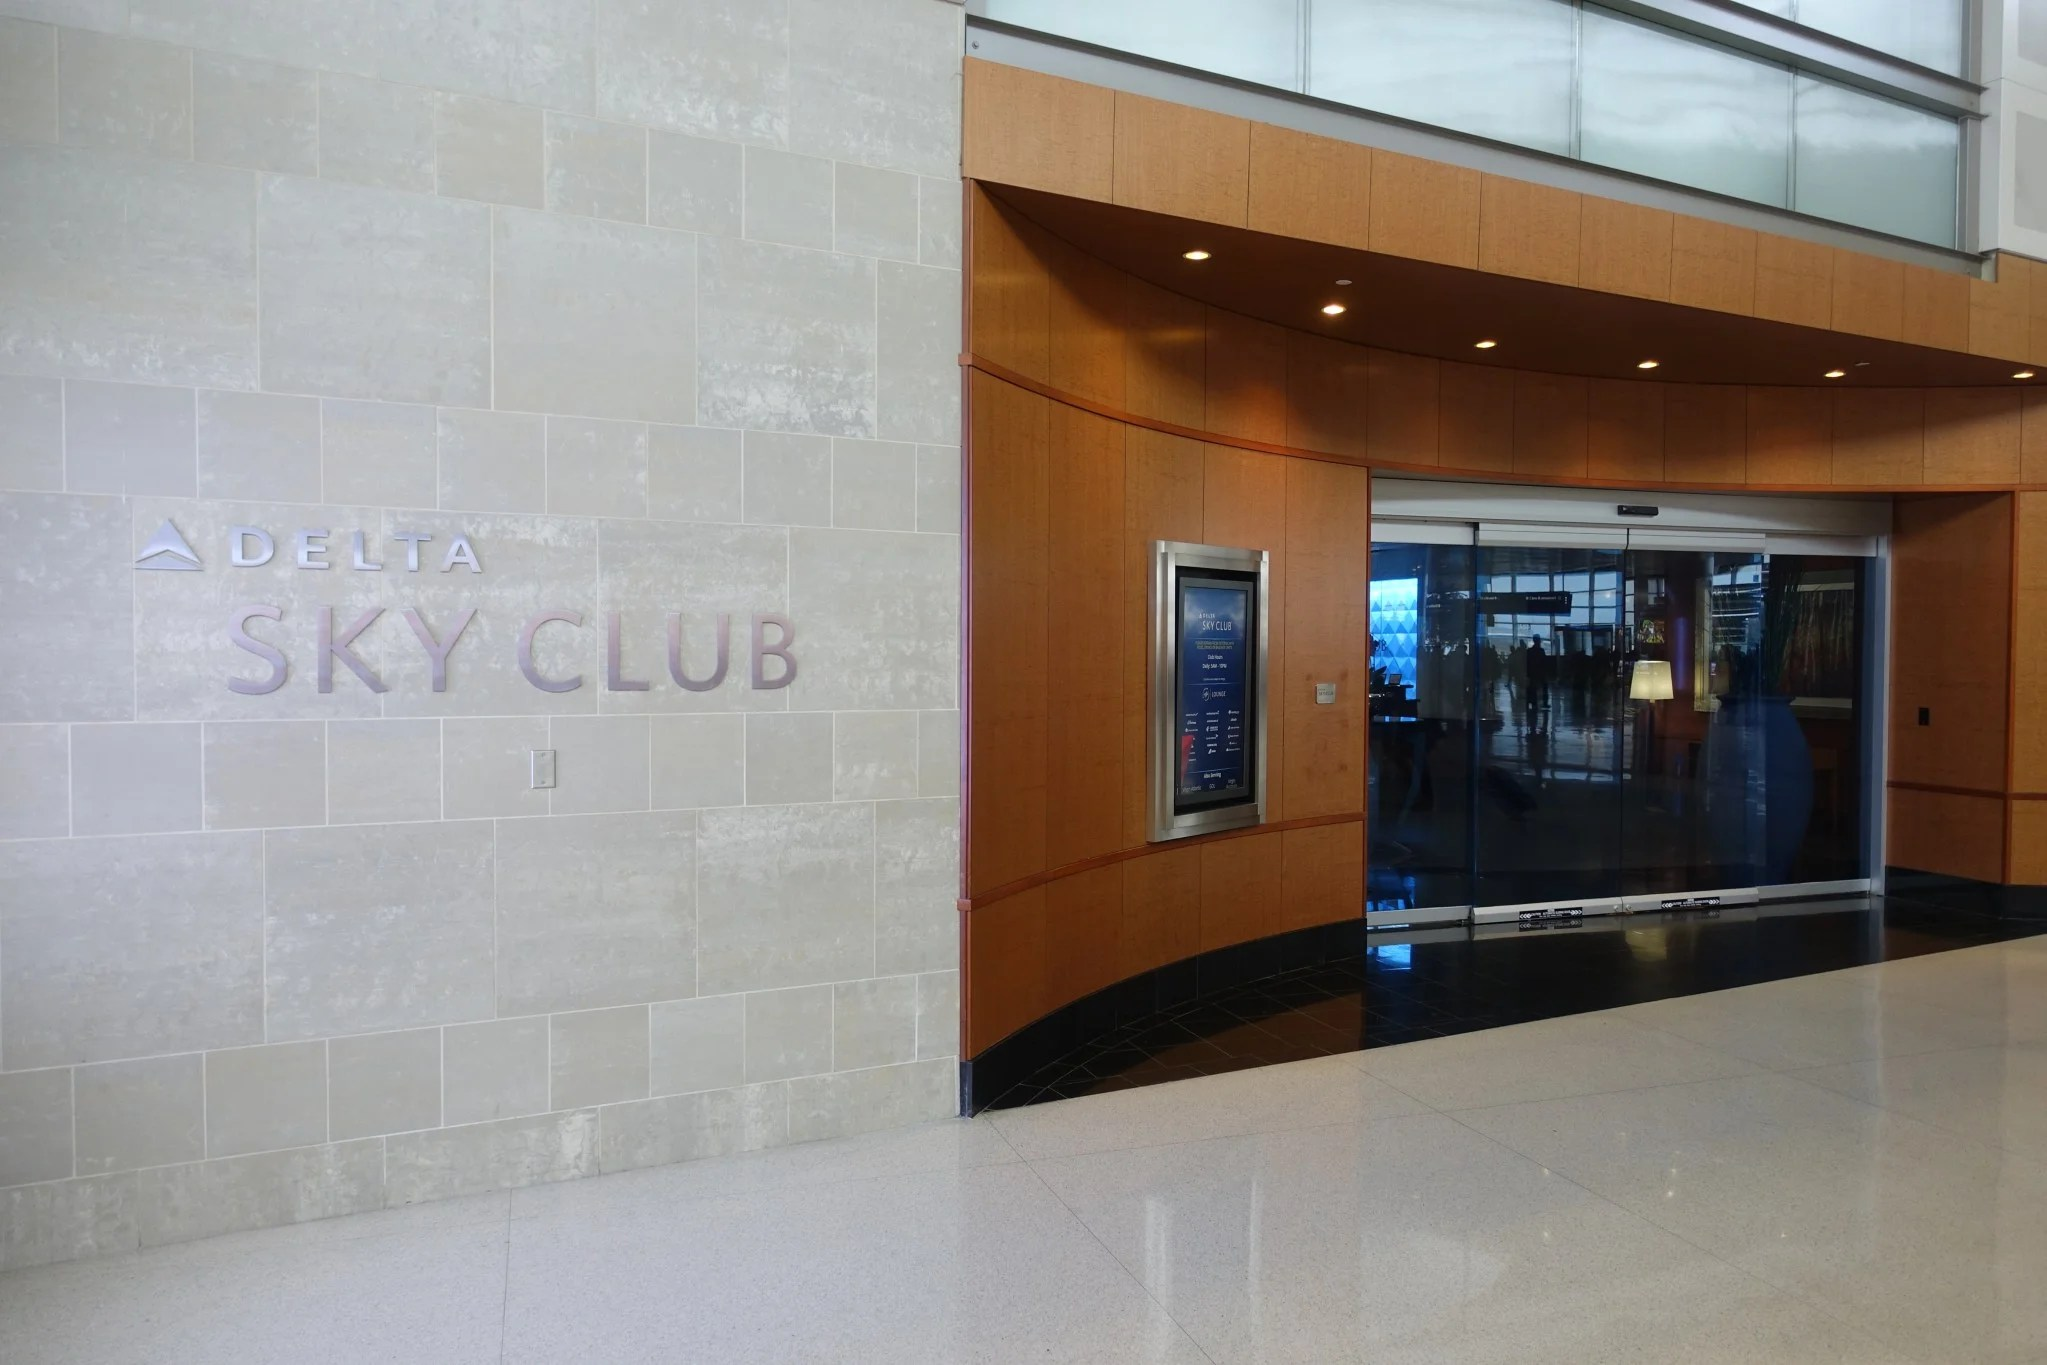 The Best Delta Sky Club Lounges and How to Get Into Them